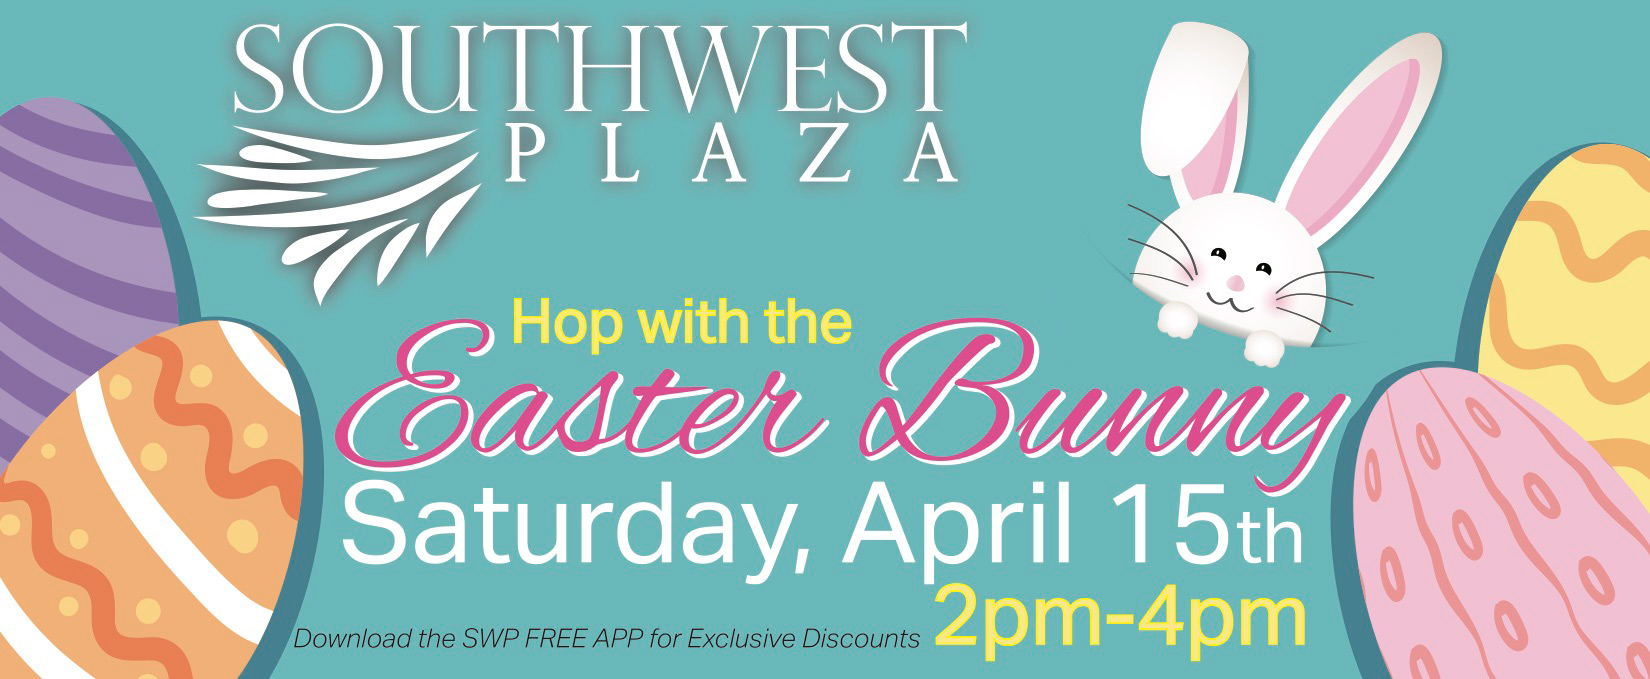 SouthWest Plaza | Hop With The Easter Bunny | April 15th 2PM - 4PM!